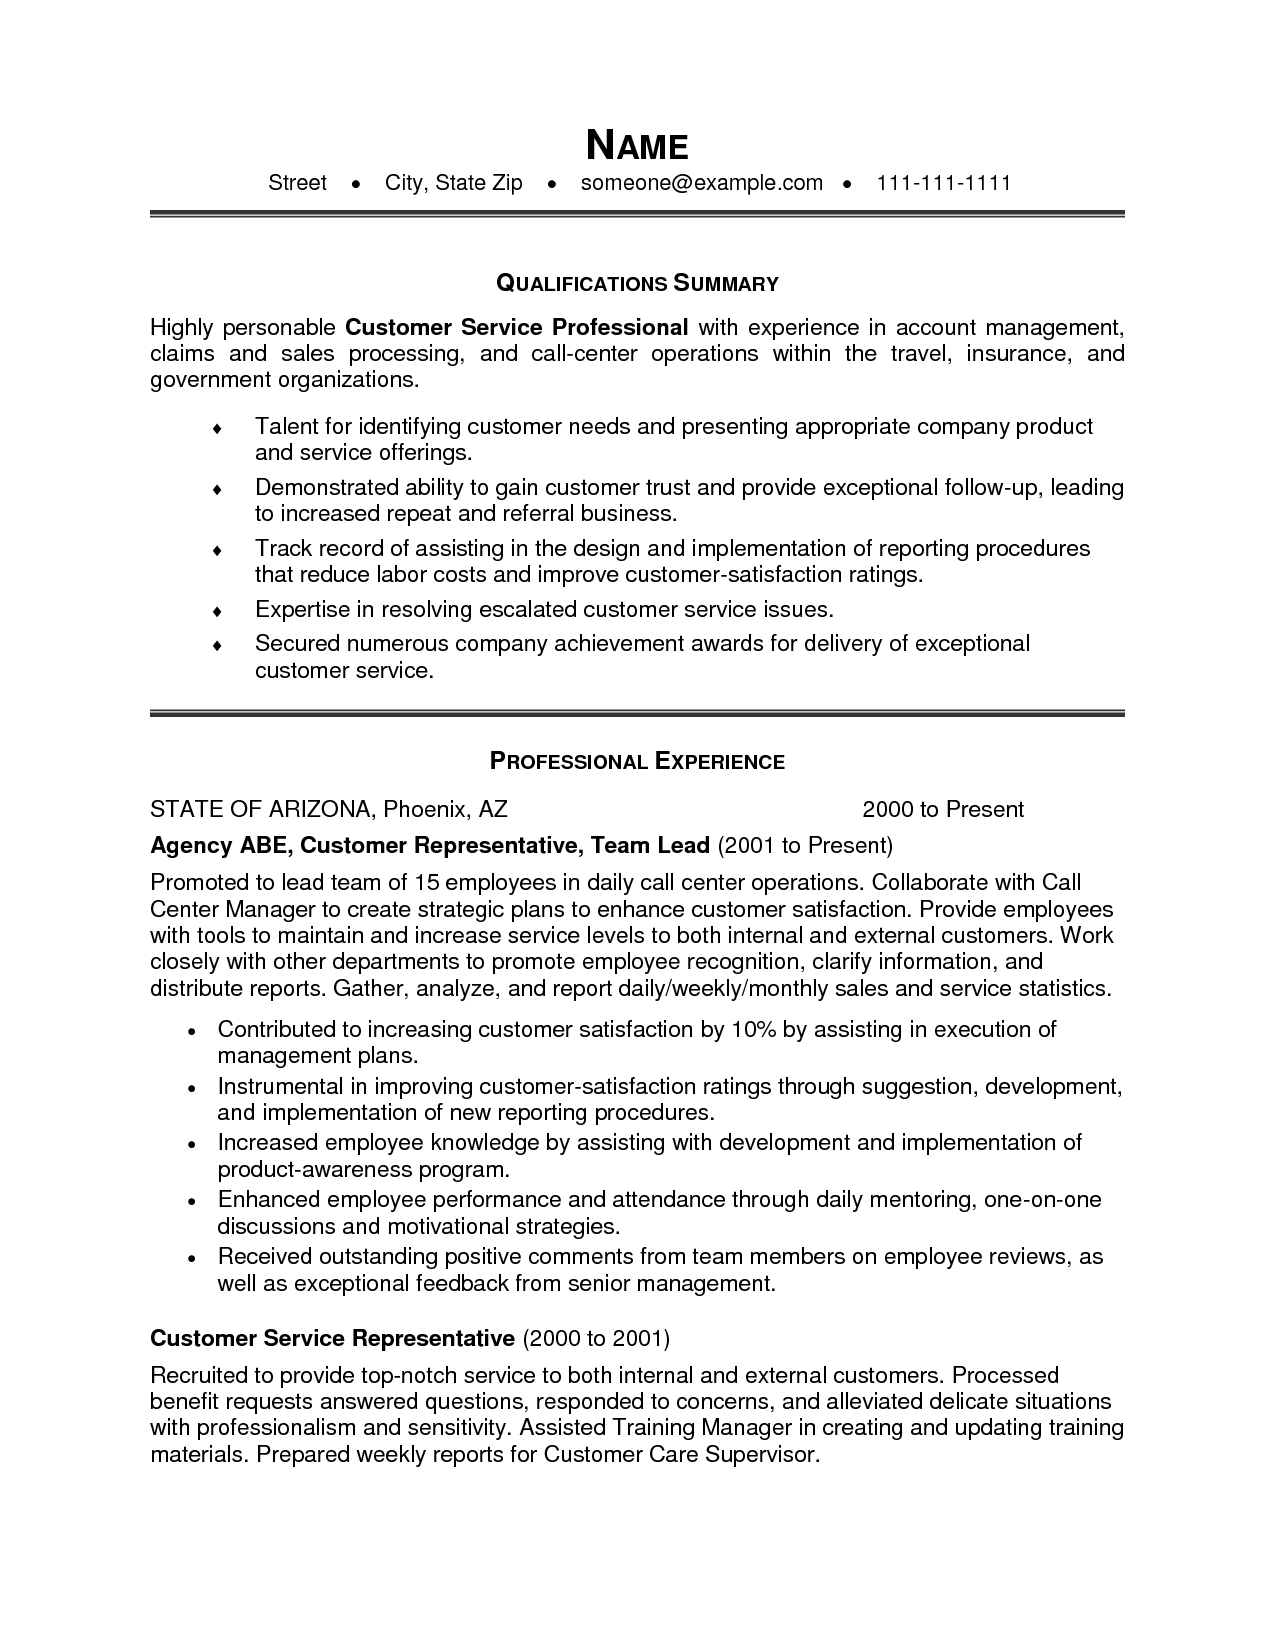 Good Summary Of Qualifications For Resume Examples